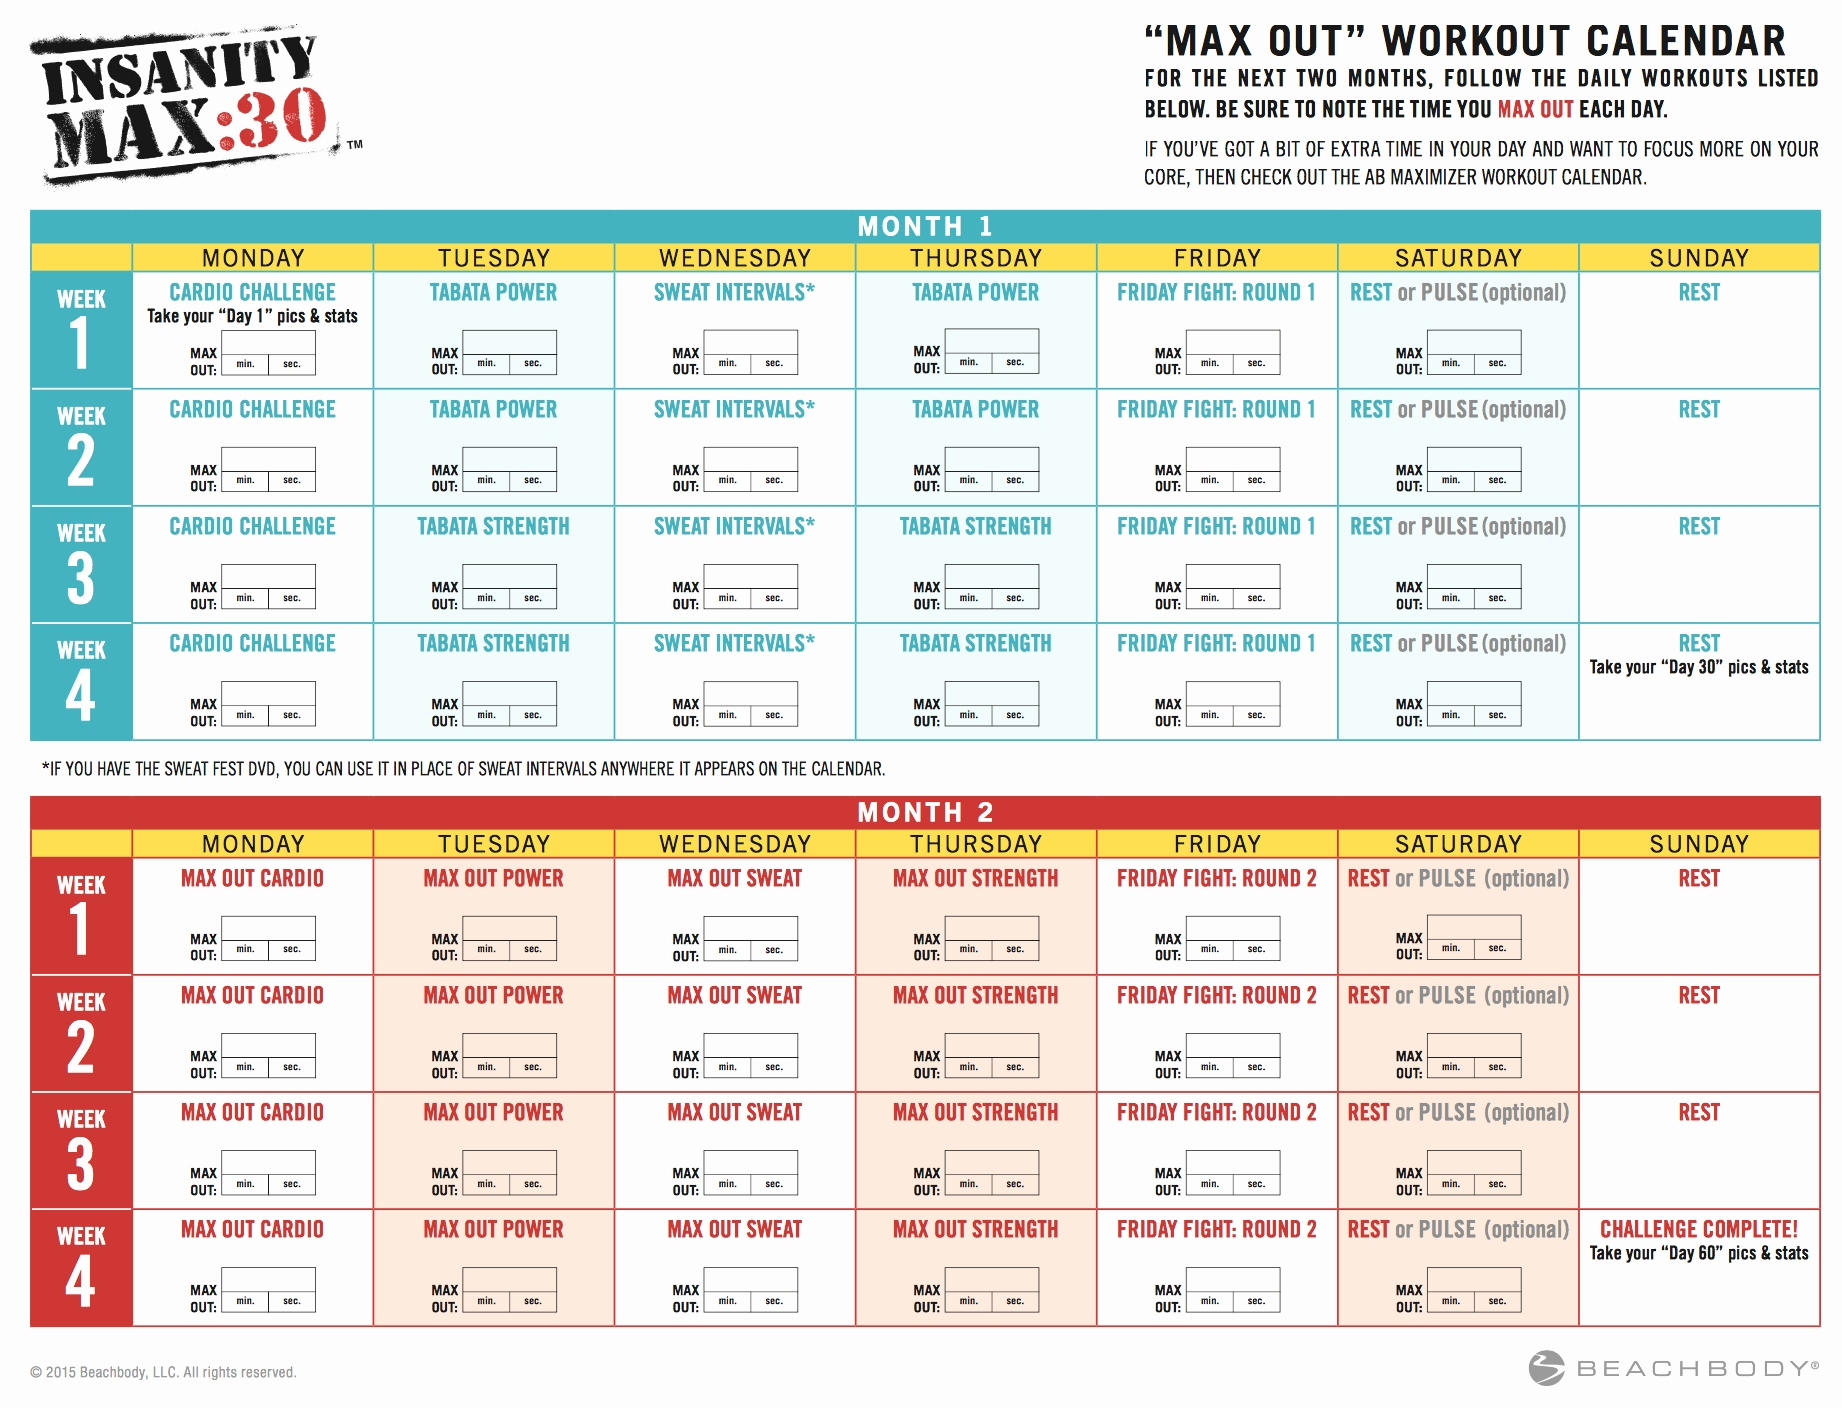 Insanity Calendar Print Out | Monthly Printable Calender within Insanity Max 30 Calendar Pdf